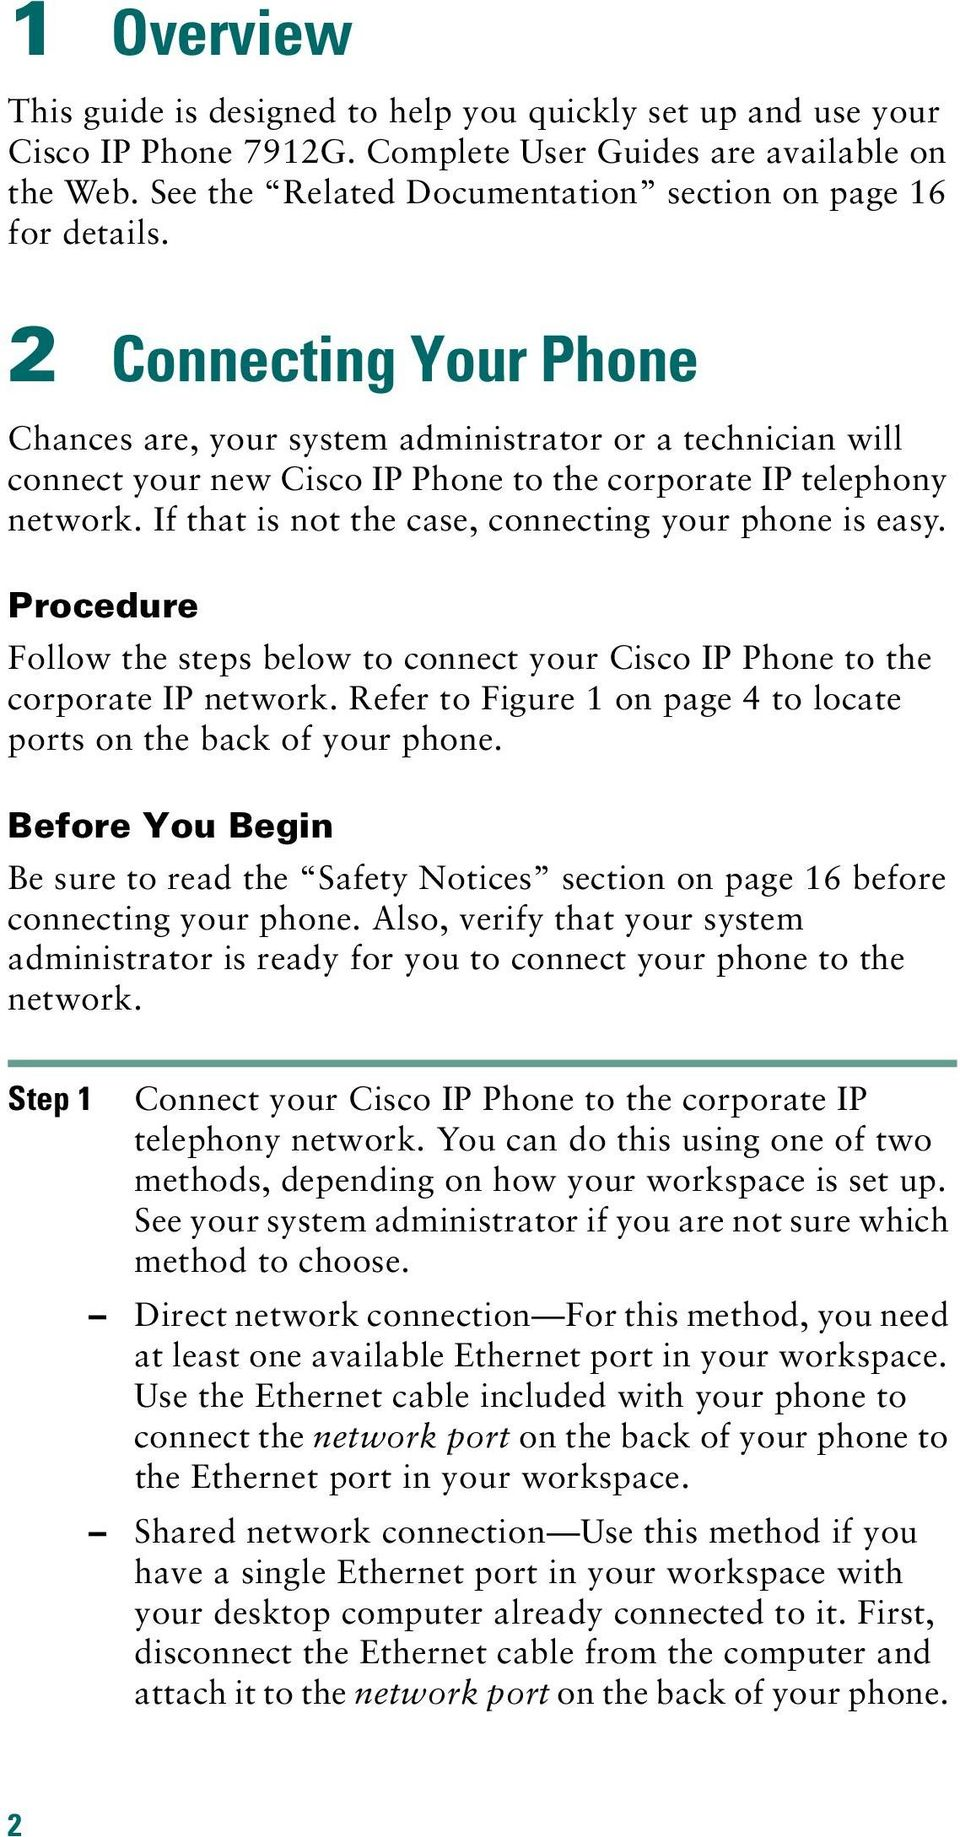 2 Connecting Your Phone Chances are, your system administrator or a technician will connect your new Cisco IP Phone to the corporate IP telephony network.